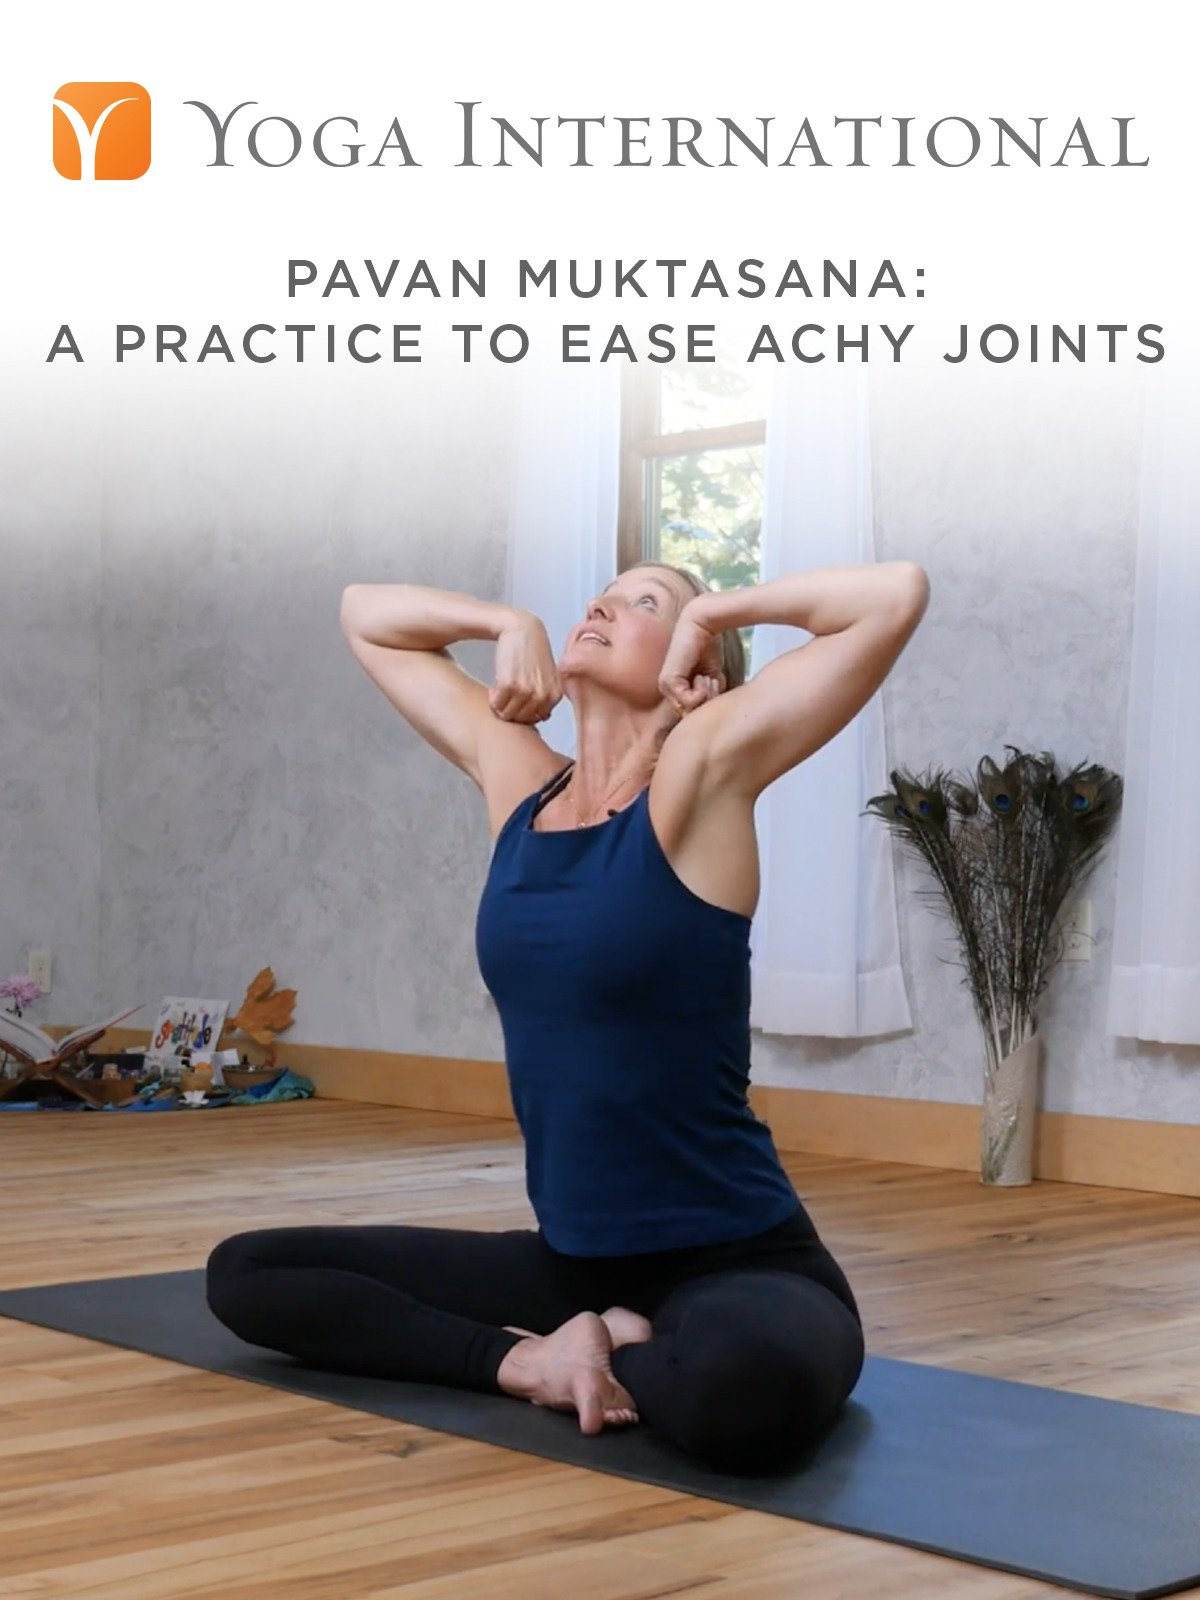 Pavan Muktasana: A Practice to Ease Achy Joints